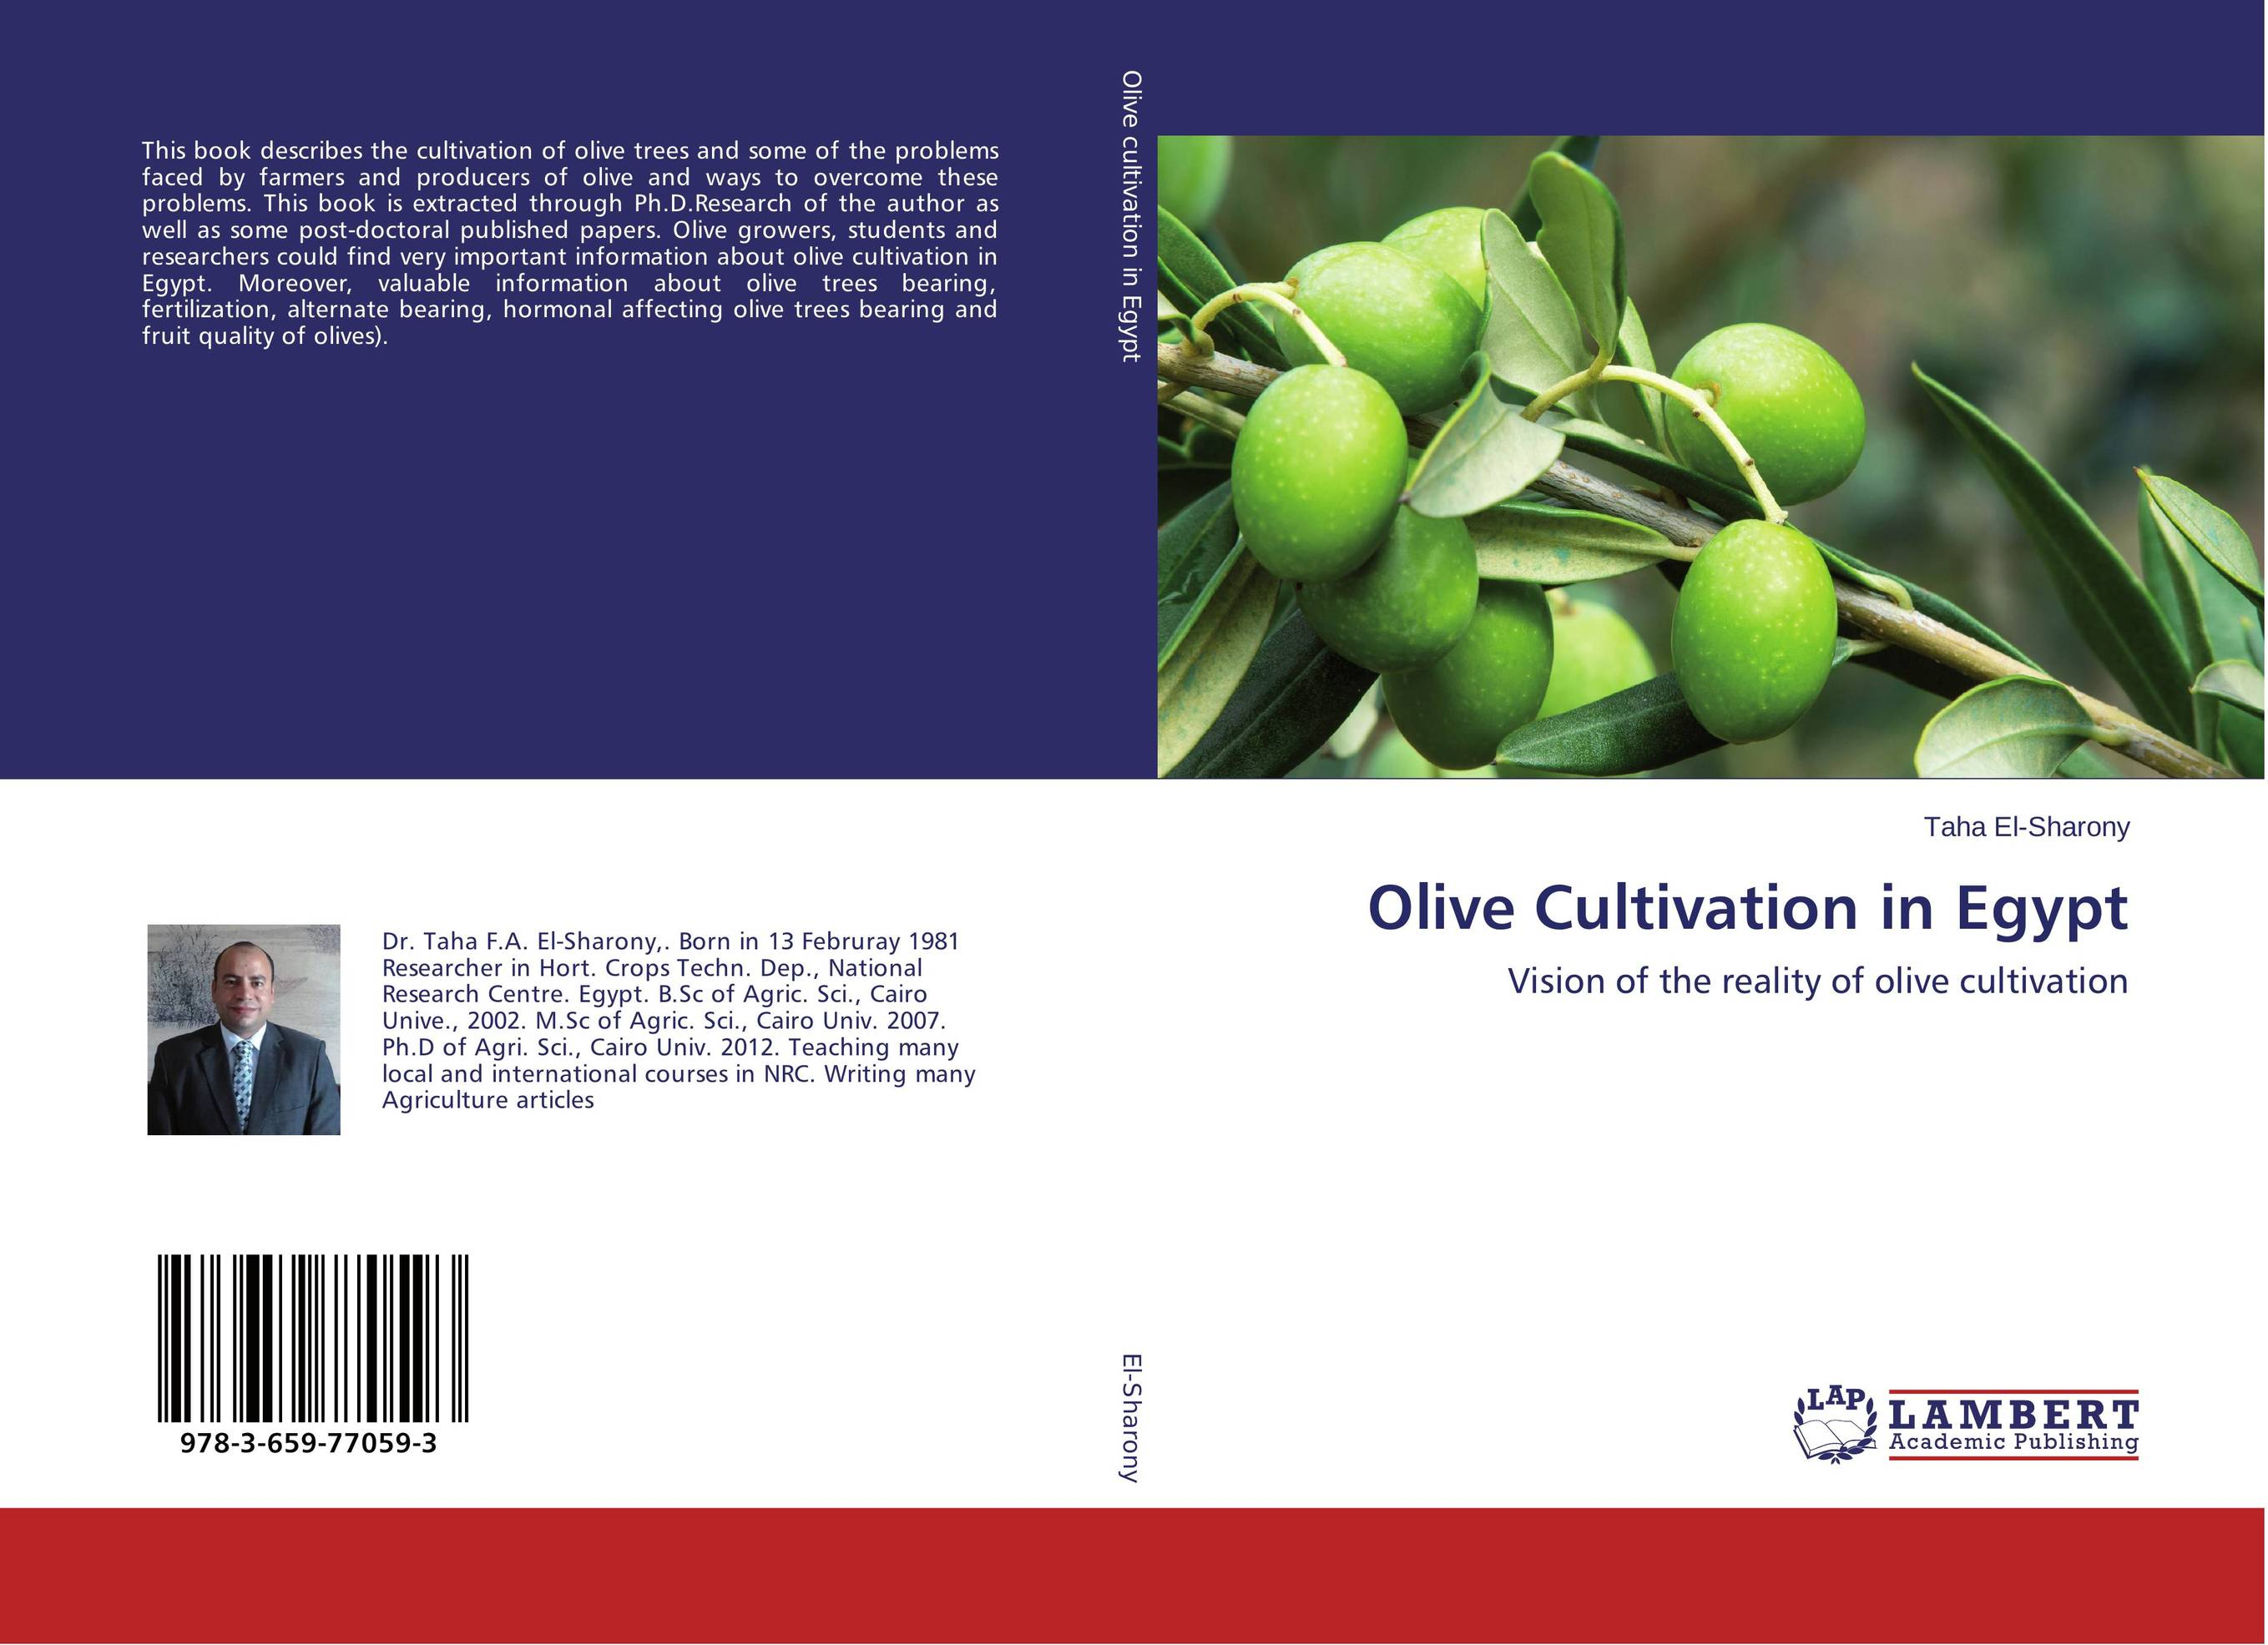 Olive Cultivation in Egypt